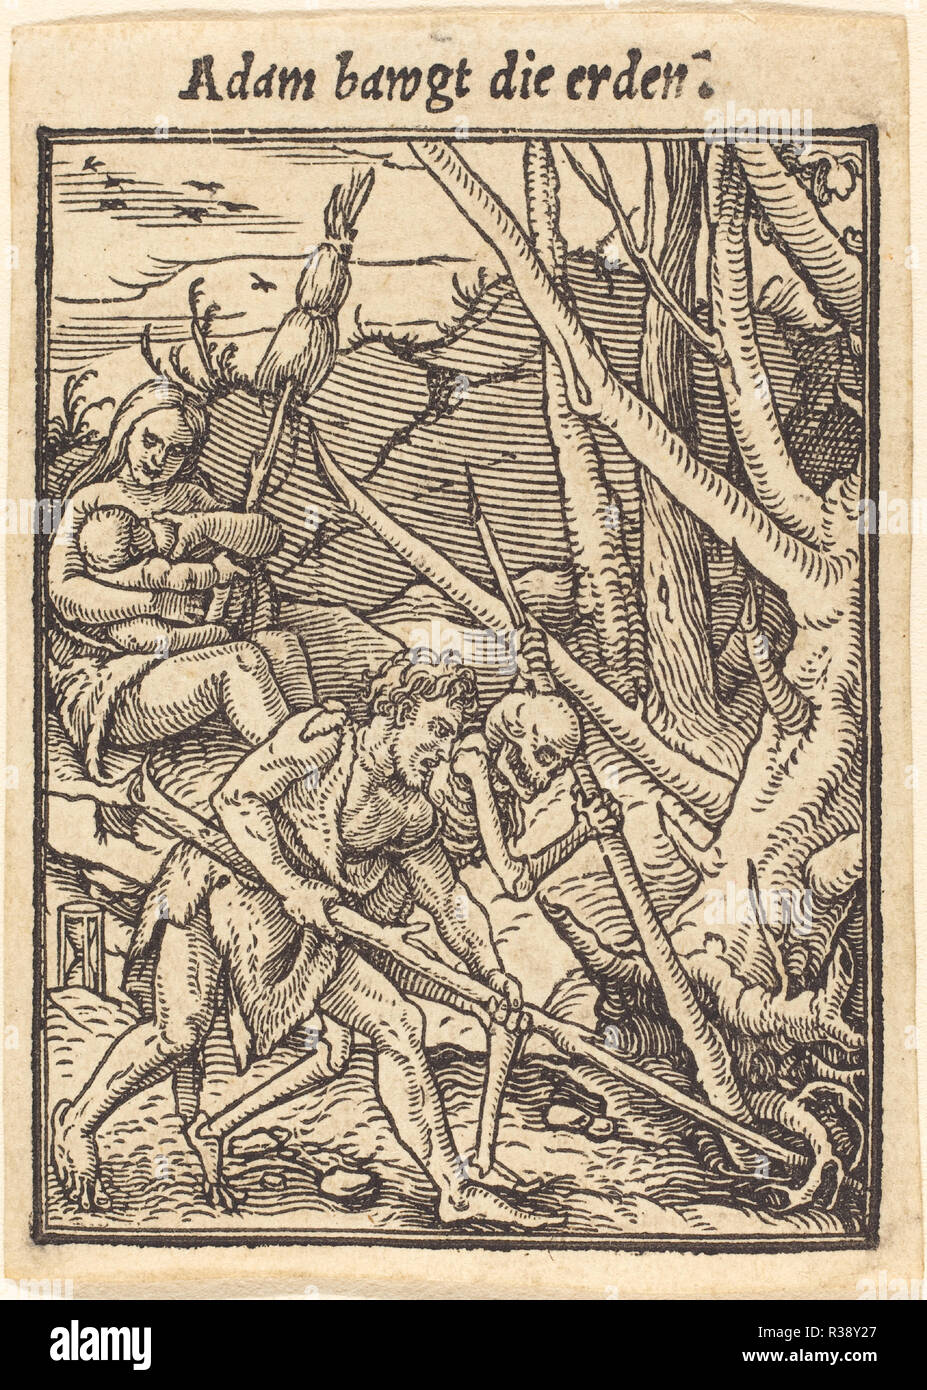 Adam Cultivating. Medium: woodcut. Museum: National Gallery of Art, Washington DC. Author: Hans Holbein the Younger. - Stock Image